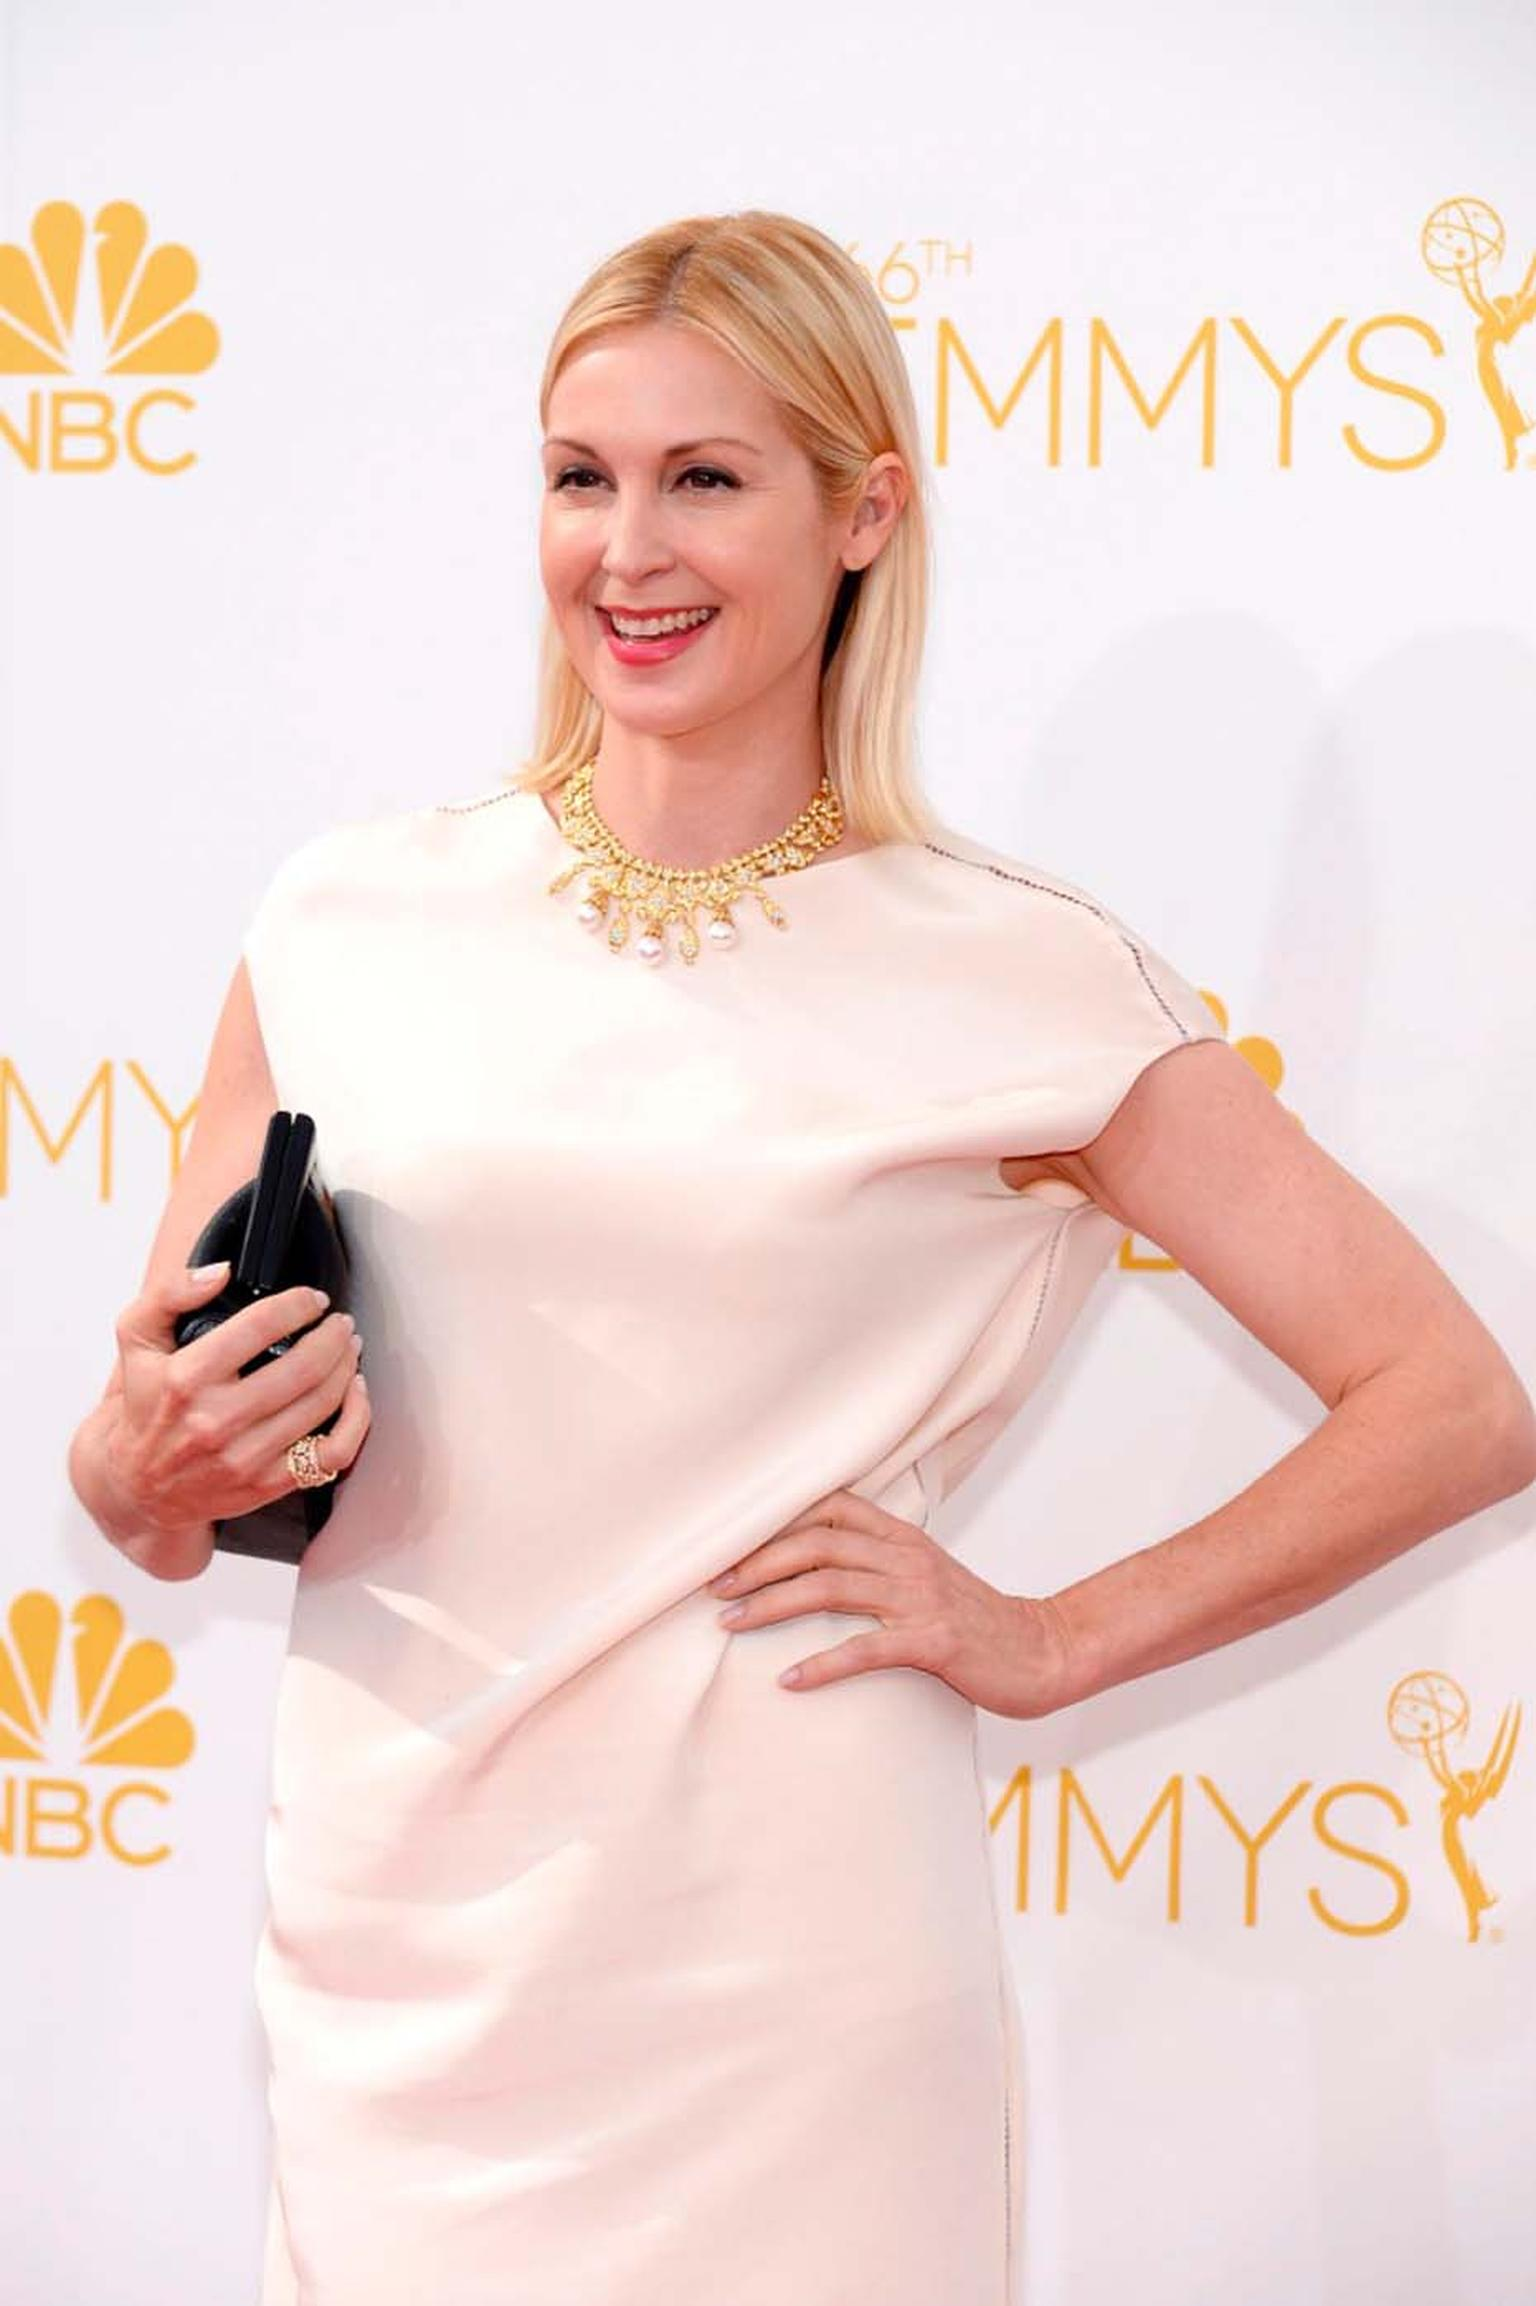 Gossip Girl actress Kelly Rutherford chose a Van Cleef & Arpels Heritage range necklace in yellow gold with cultured pearls and diamonds as well as a Snowflake ring in yellow gold and diamonds.